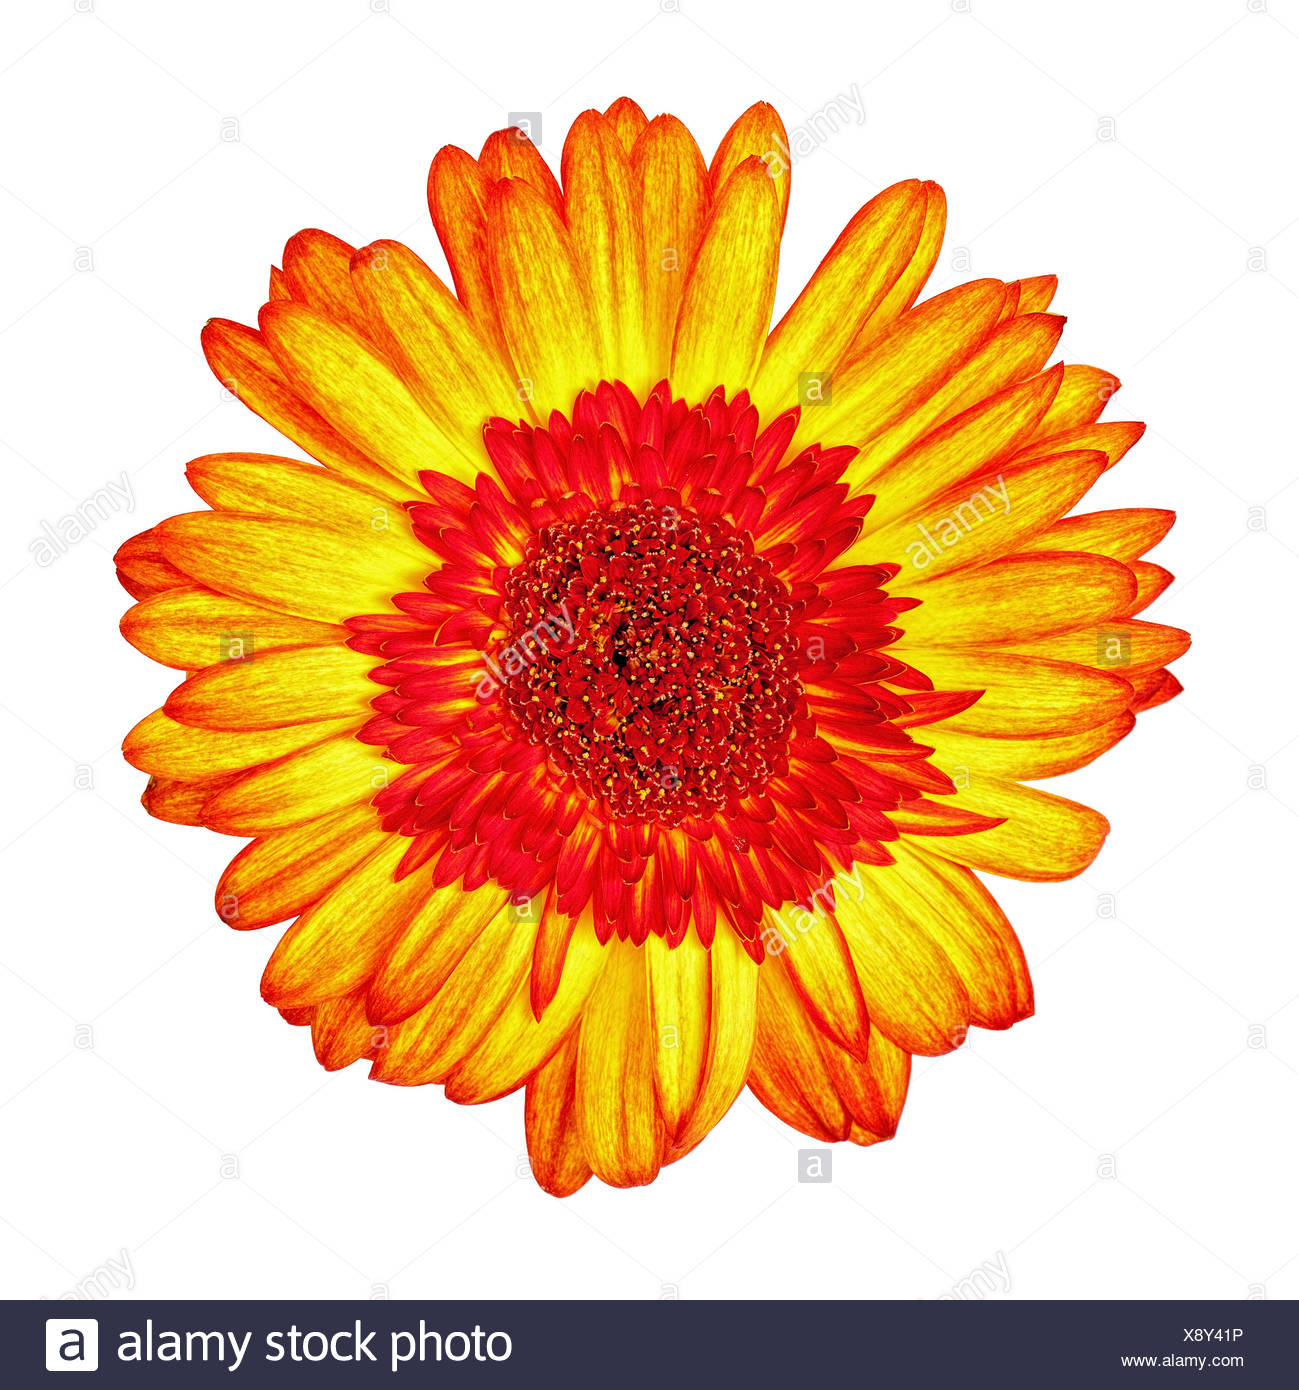 Yellow-Red Gerbera Flower Isolated Stock Photo